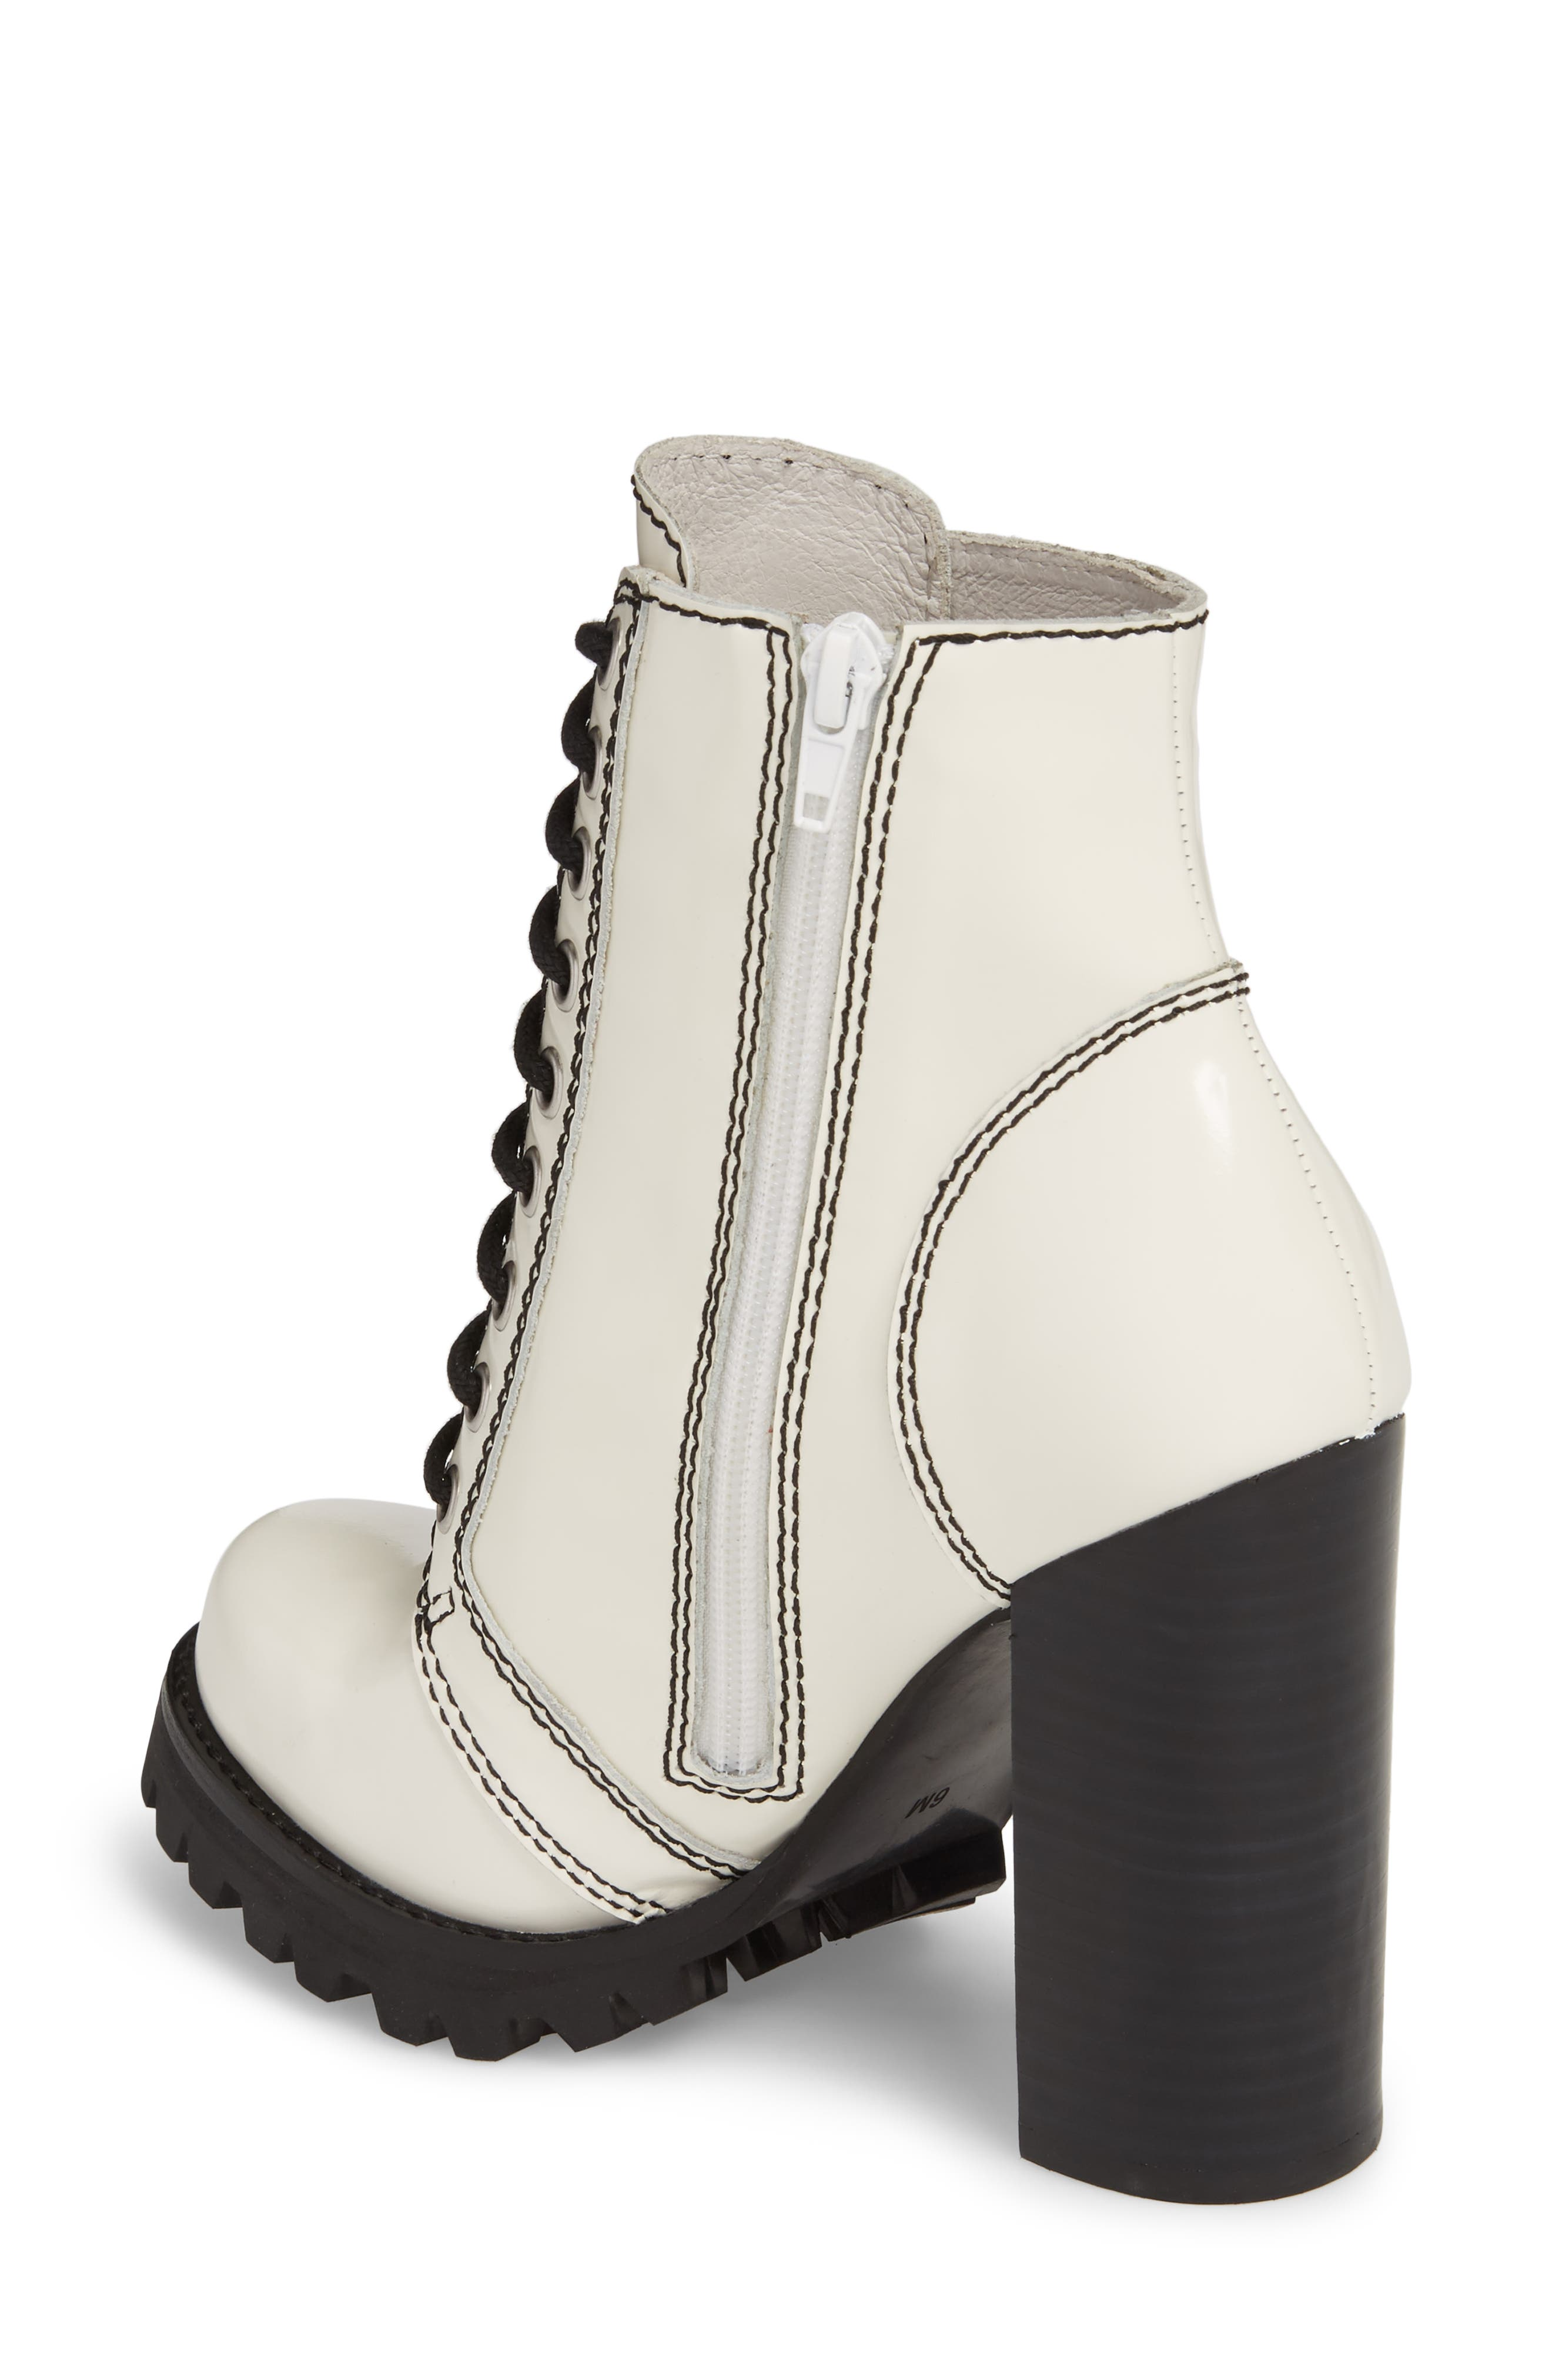 'Legion' High Heel Boot,                             Alternate thumbnail 2, color,                             White Box Black